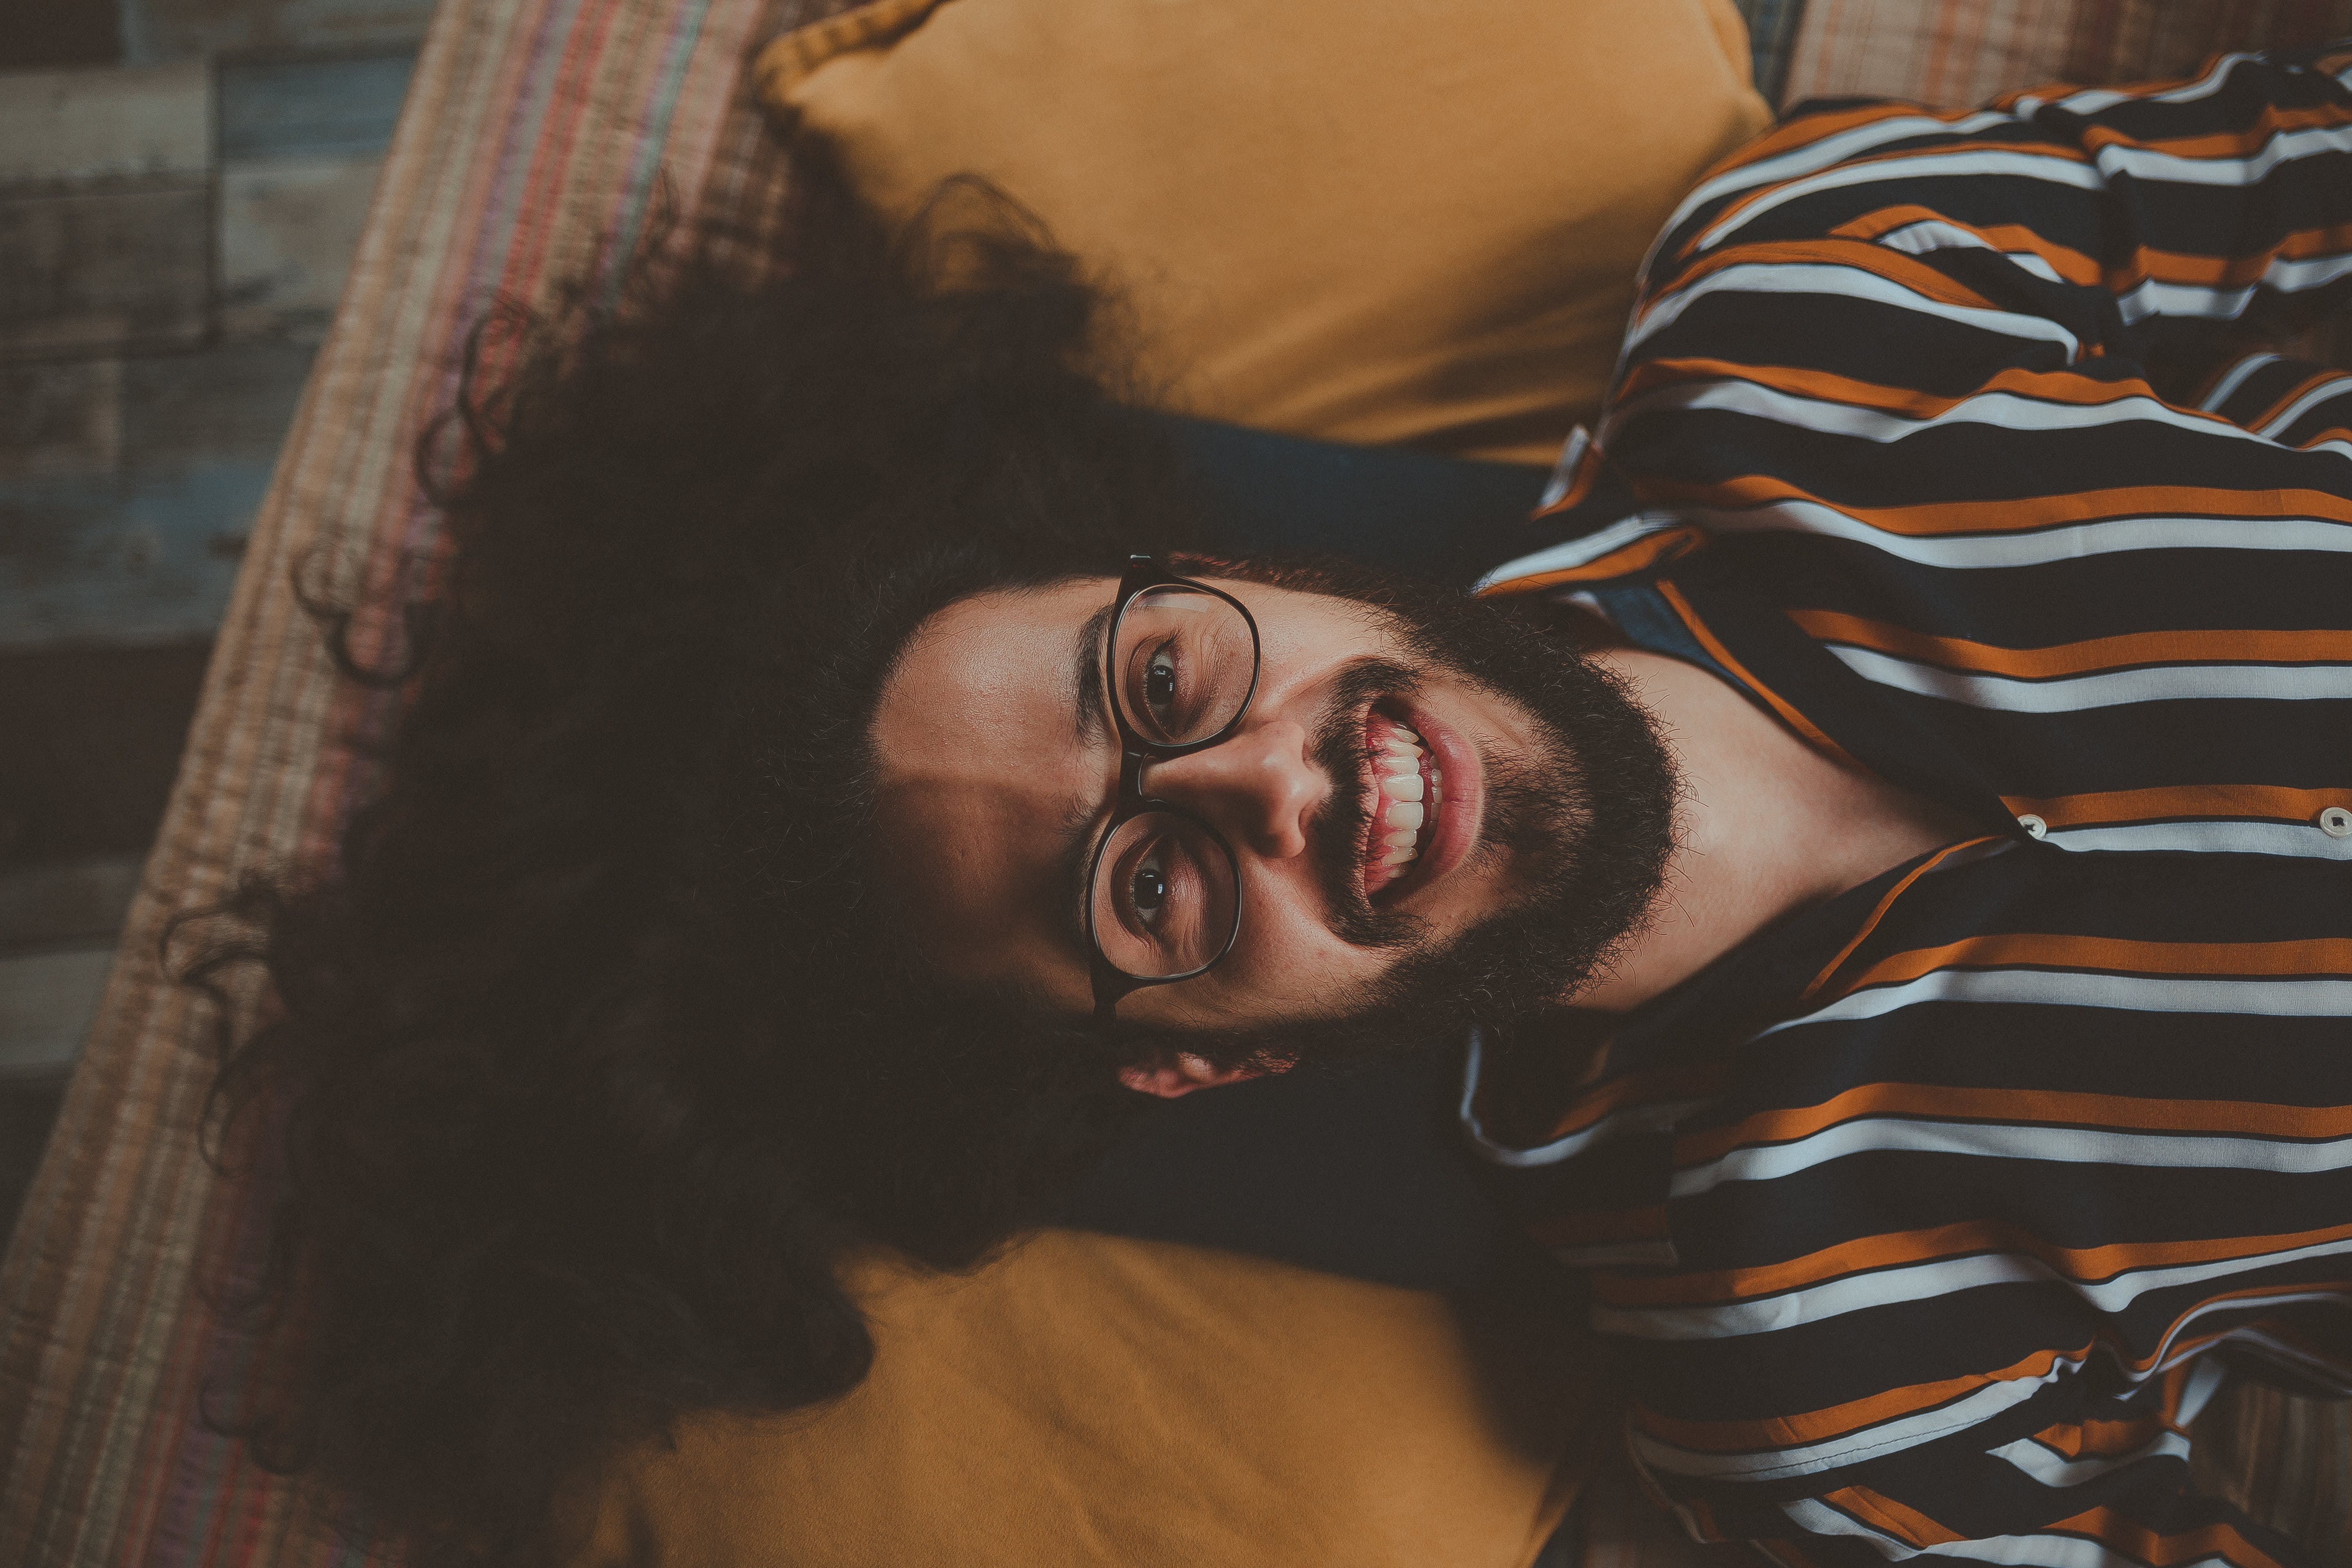 Man Lying on Bed Smiling